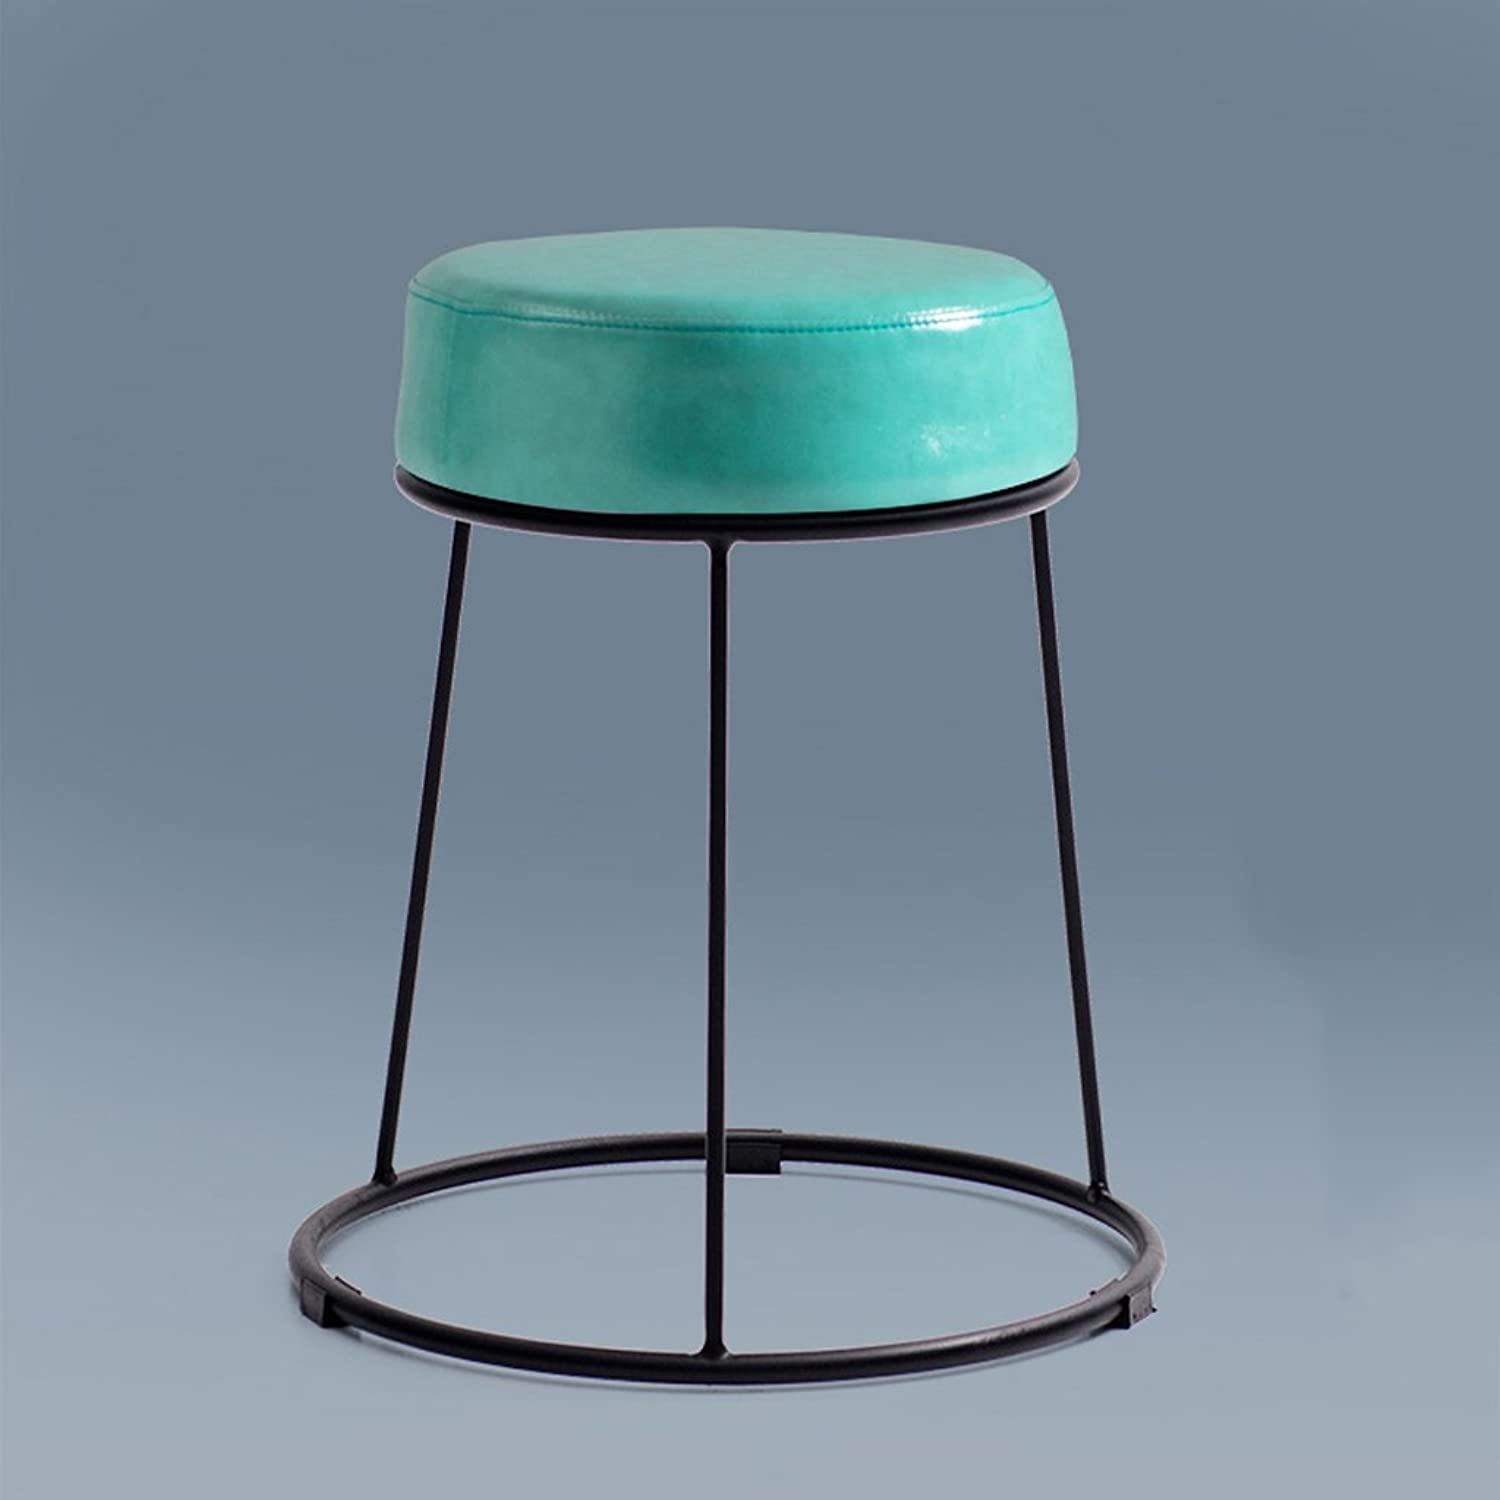 Wrought Iron Stool Fashion Home Creative Water bluee color Table Stool Sofa Stool Small Round Stool (Size   L)